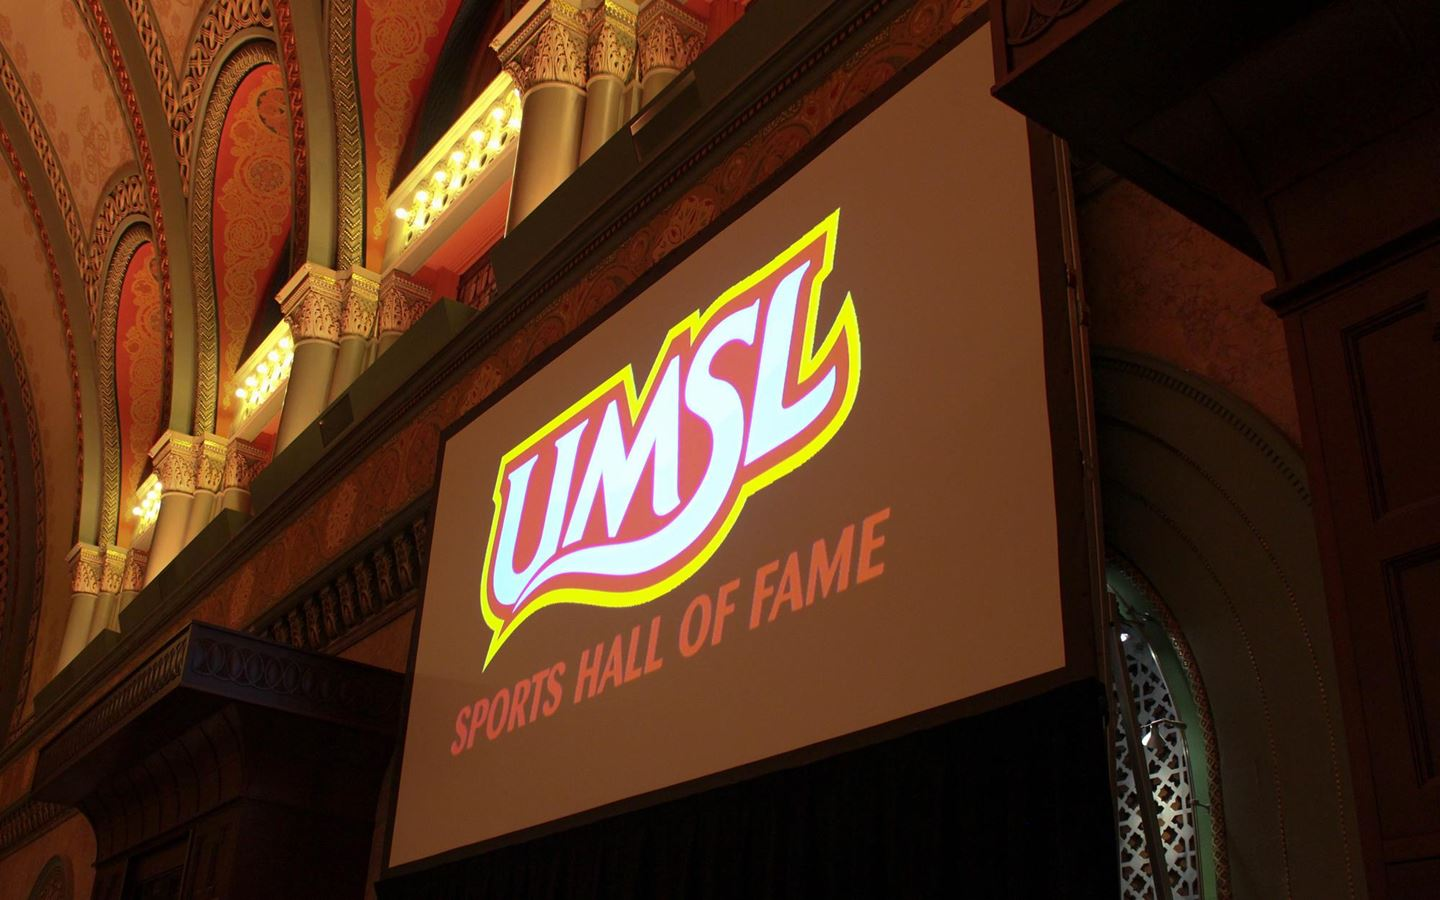 Nominations open for 2020 UMSL Sports Hall of Fame